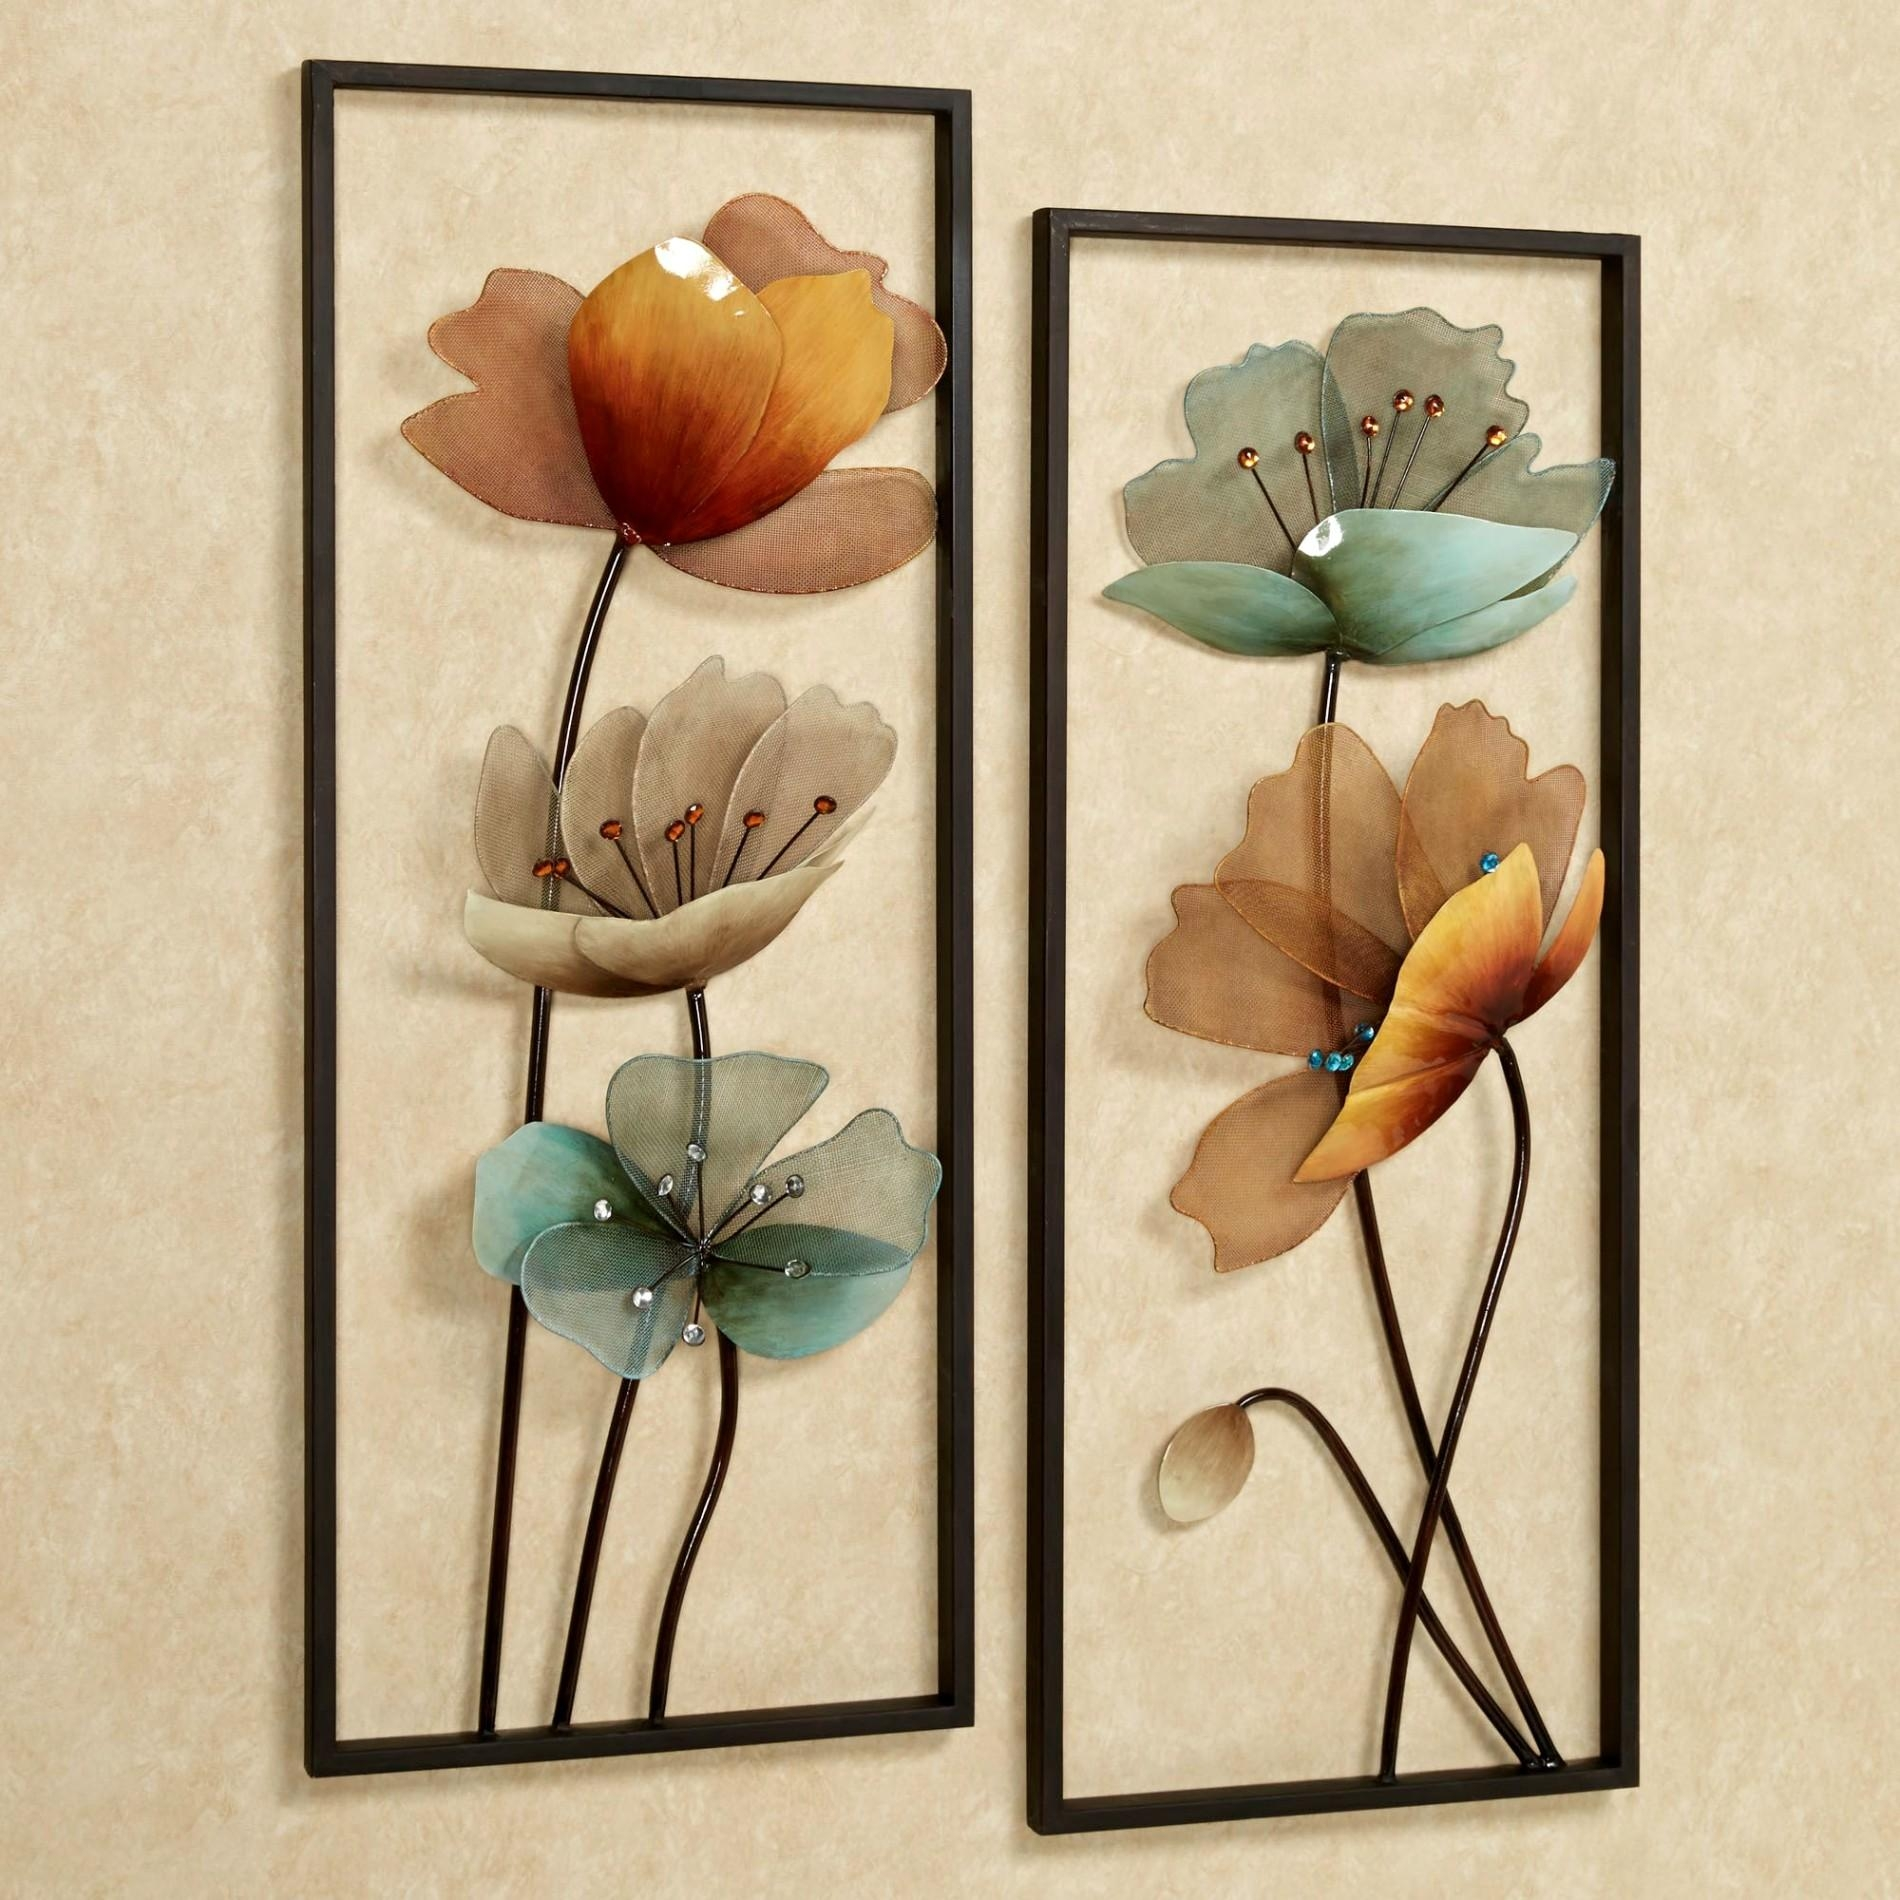 New Red Flower Metal Wall Decor Regarding Red Flower Metal Wall Art (View 3 of 20)